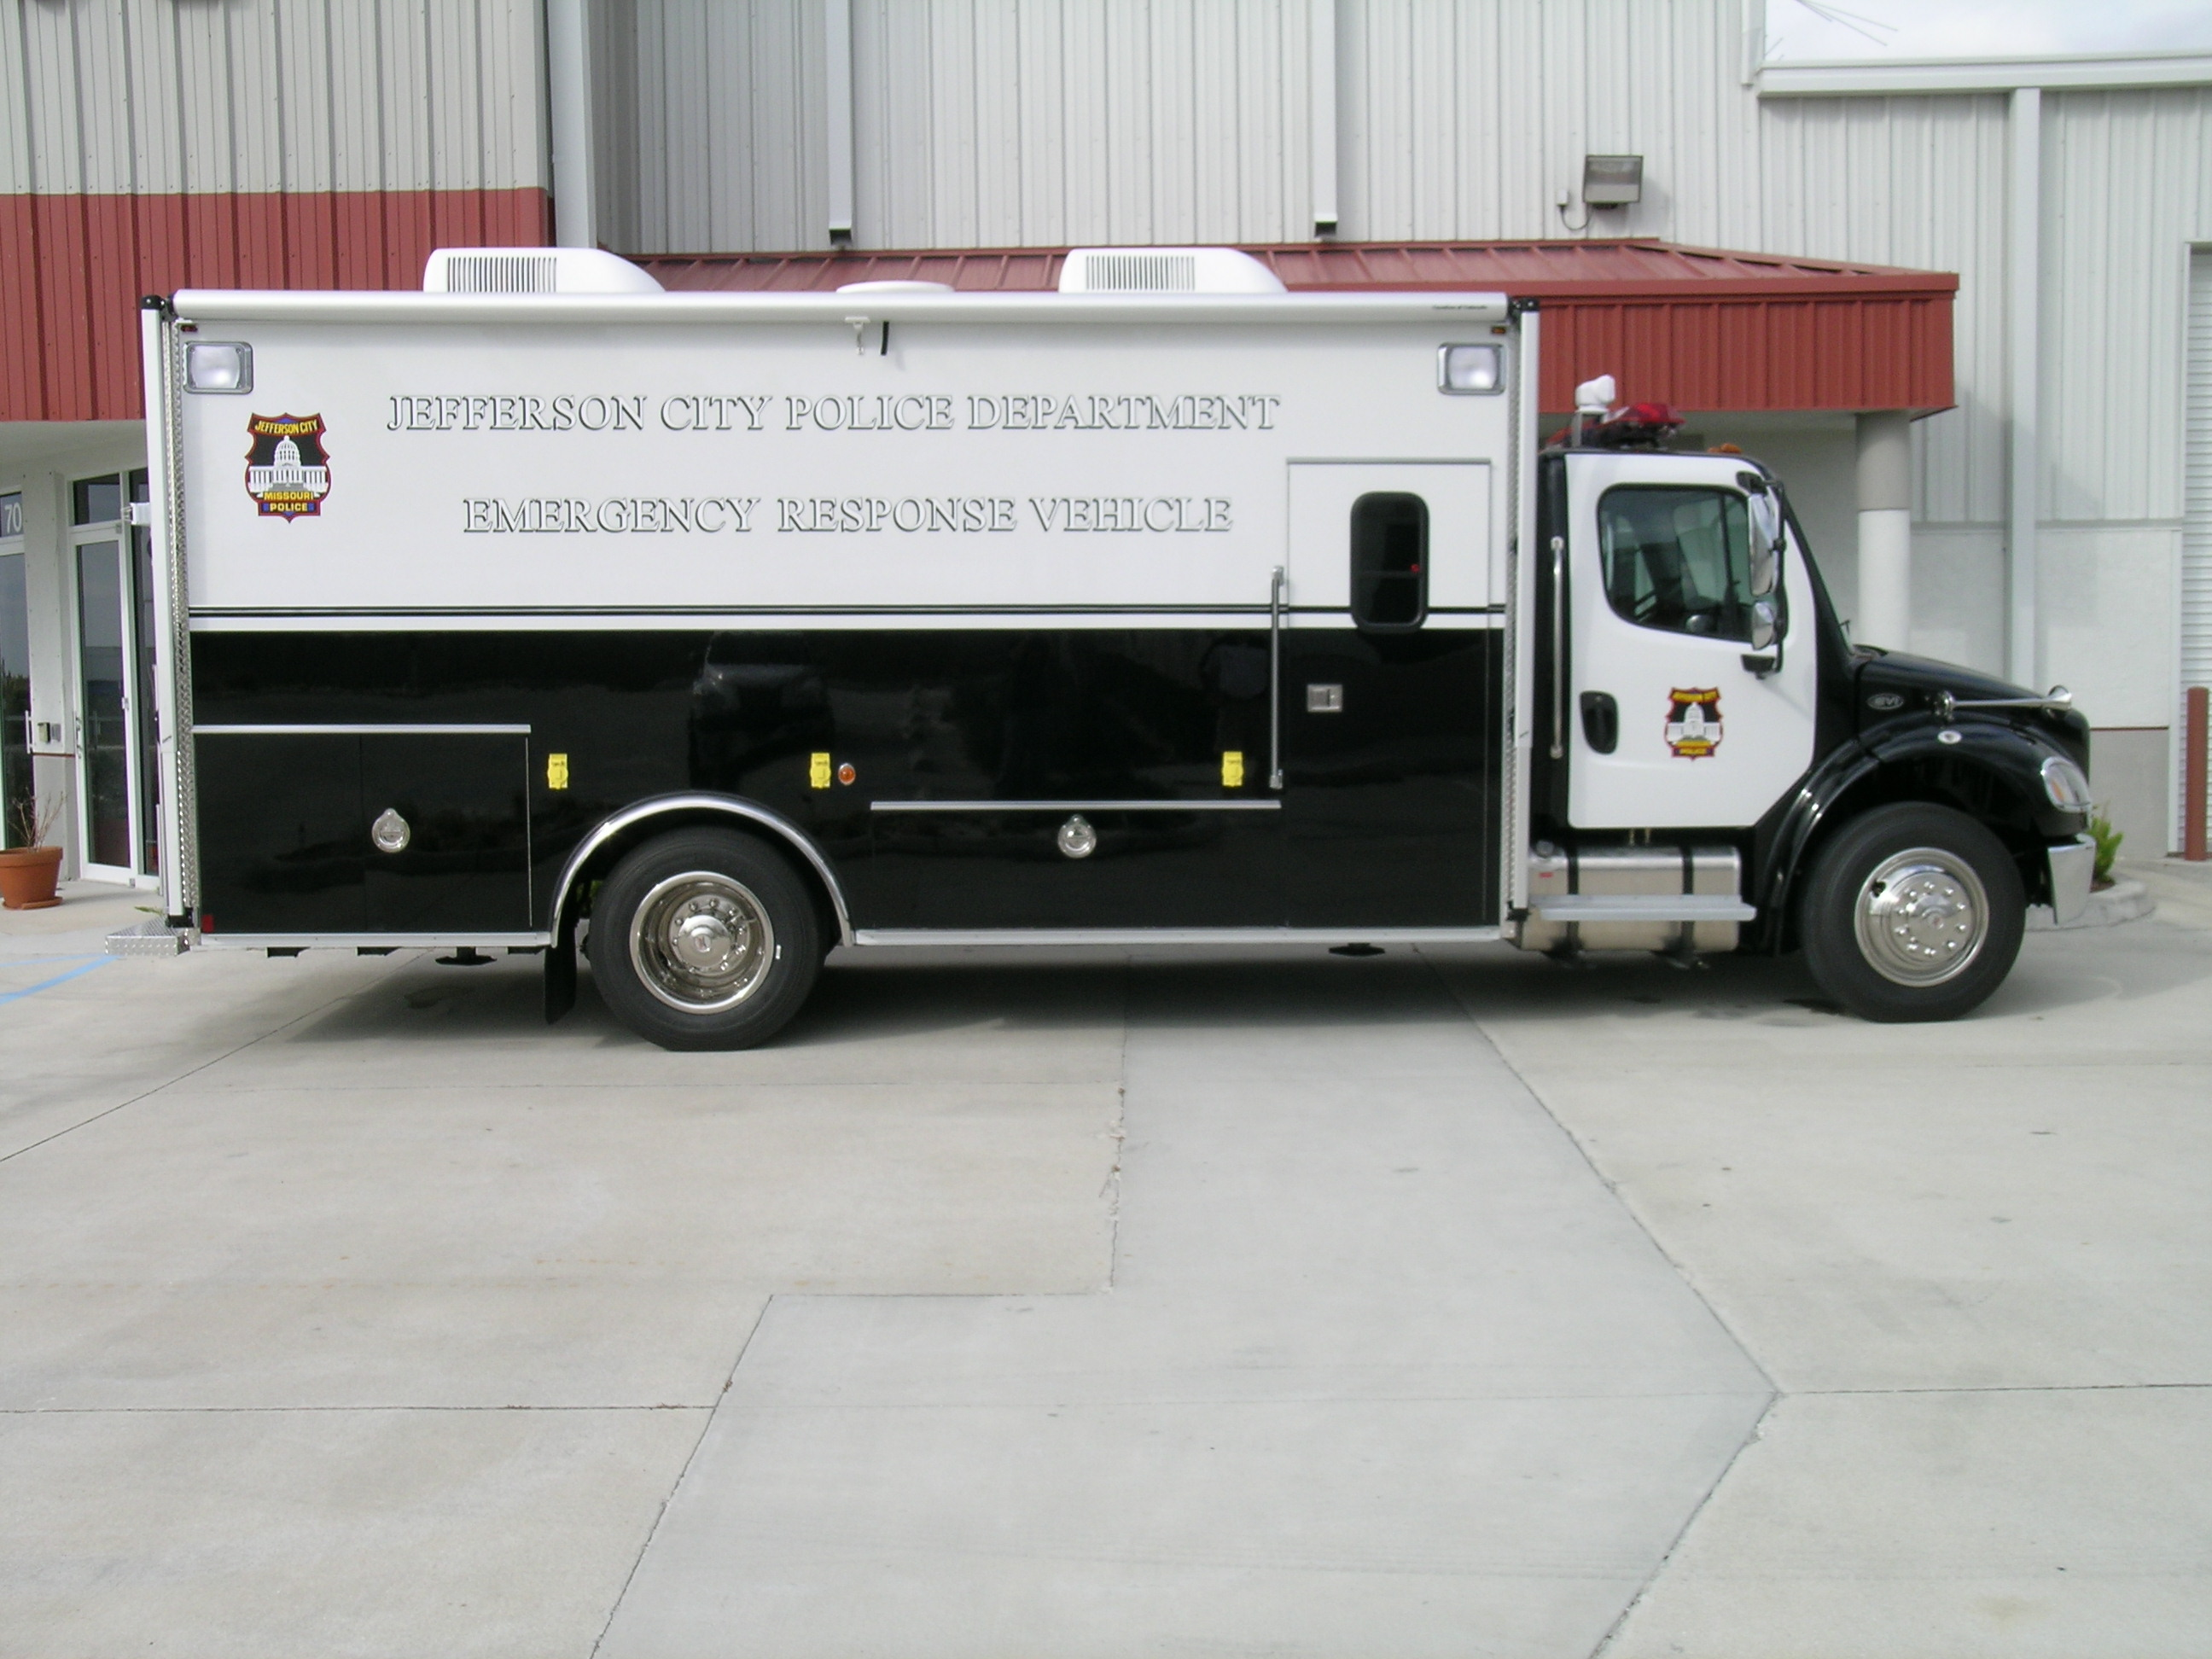 18-Ft. Emergency Response Vehicle